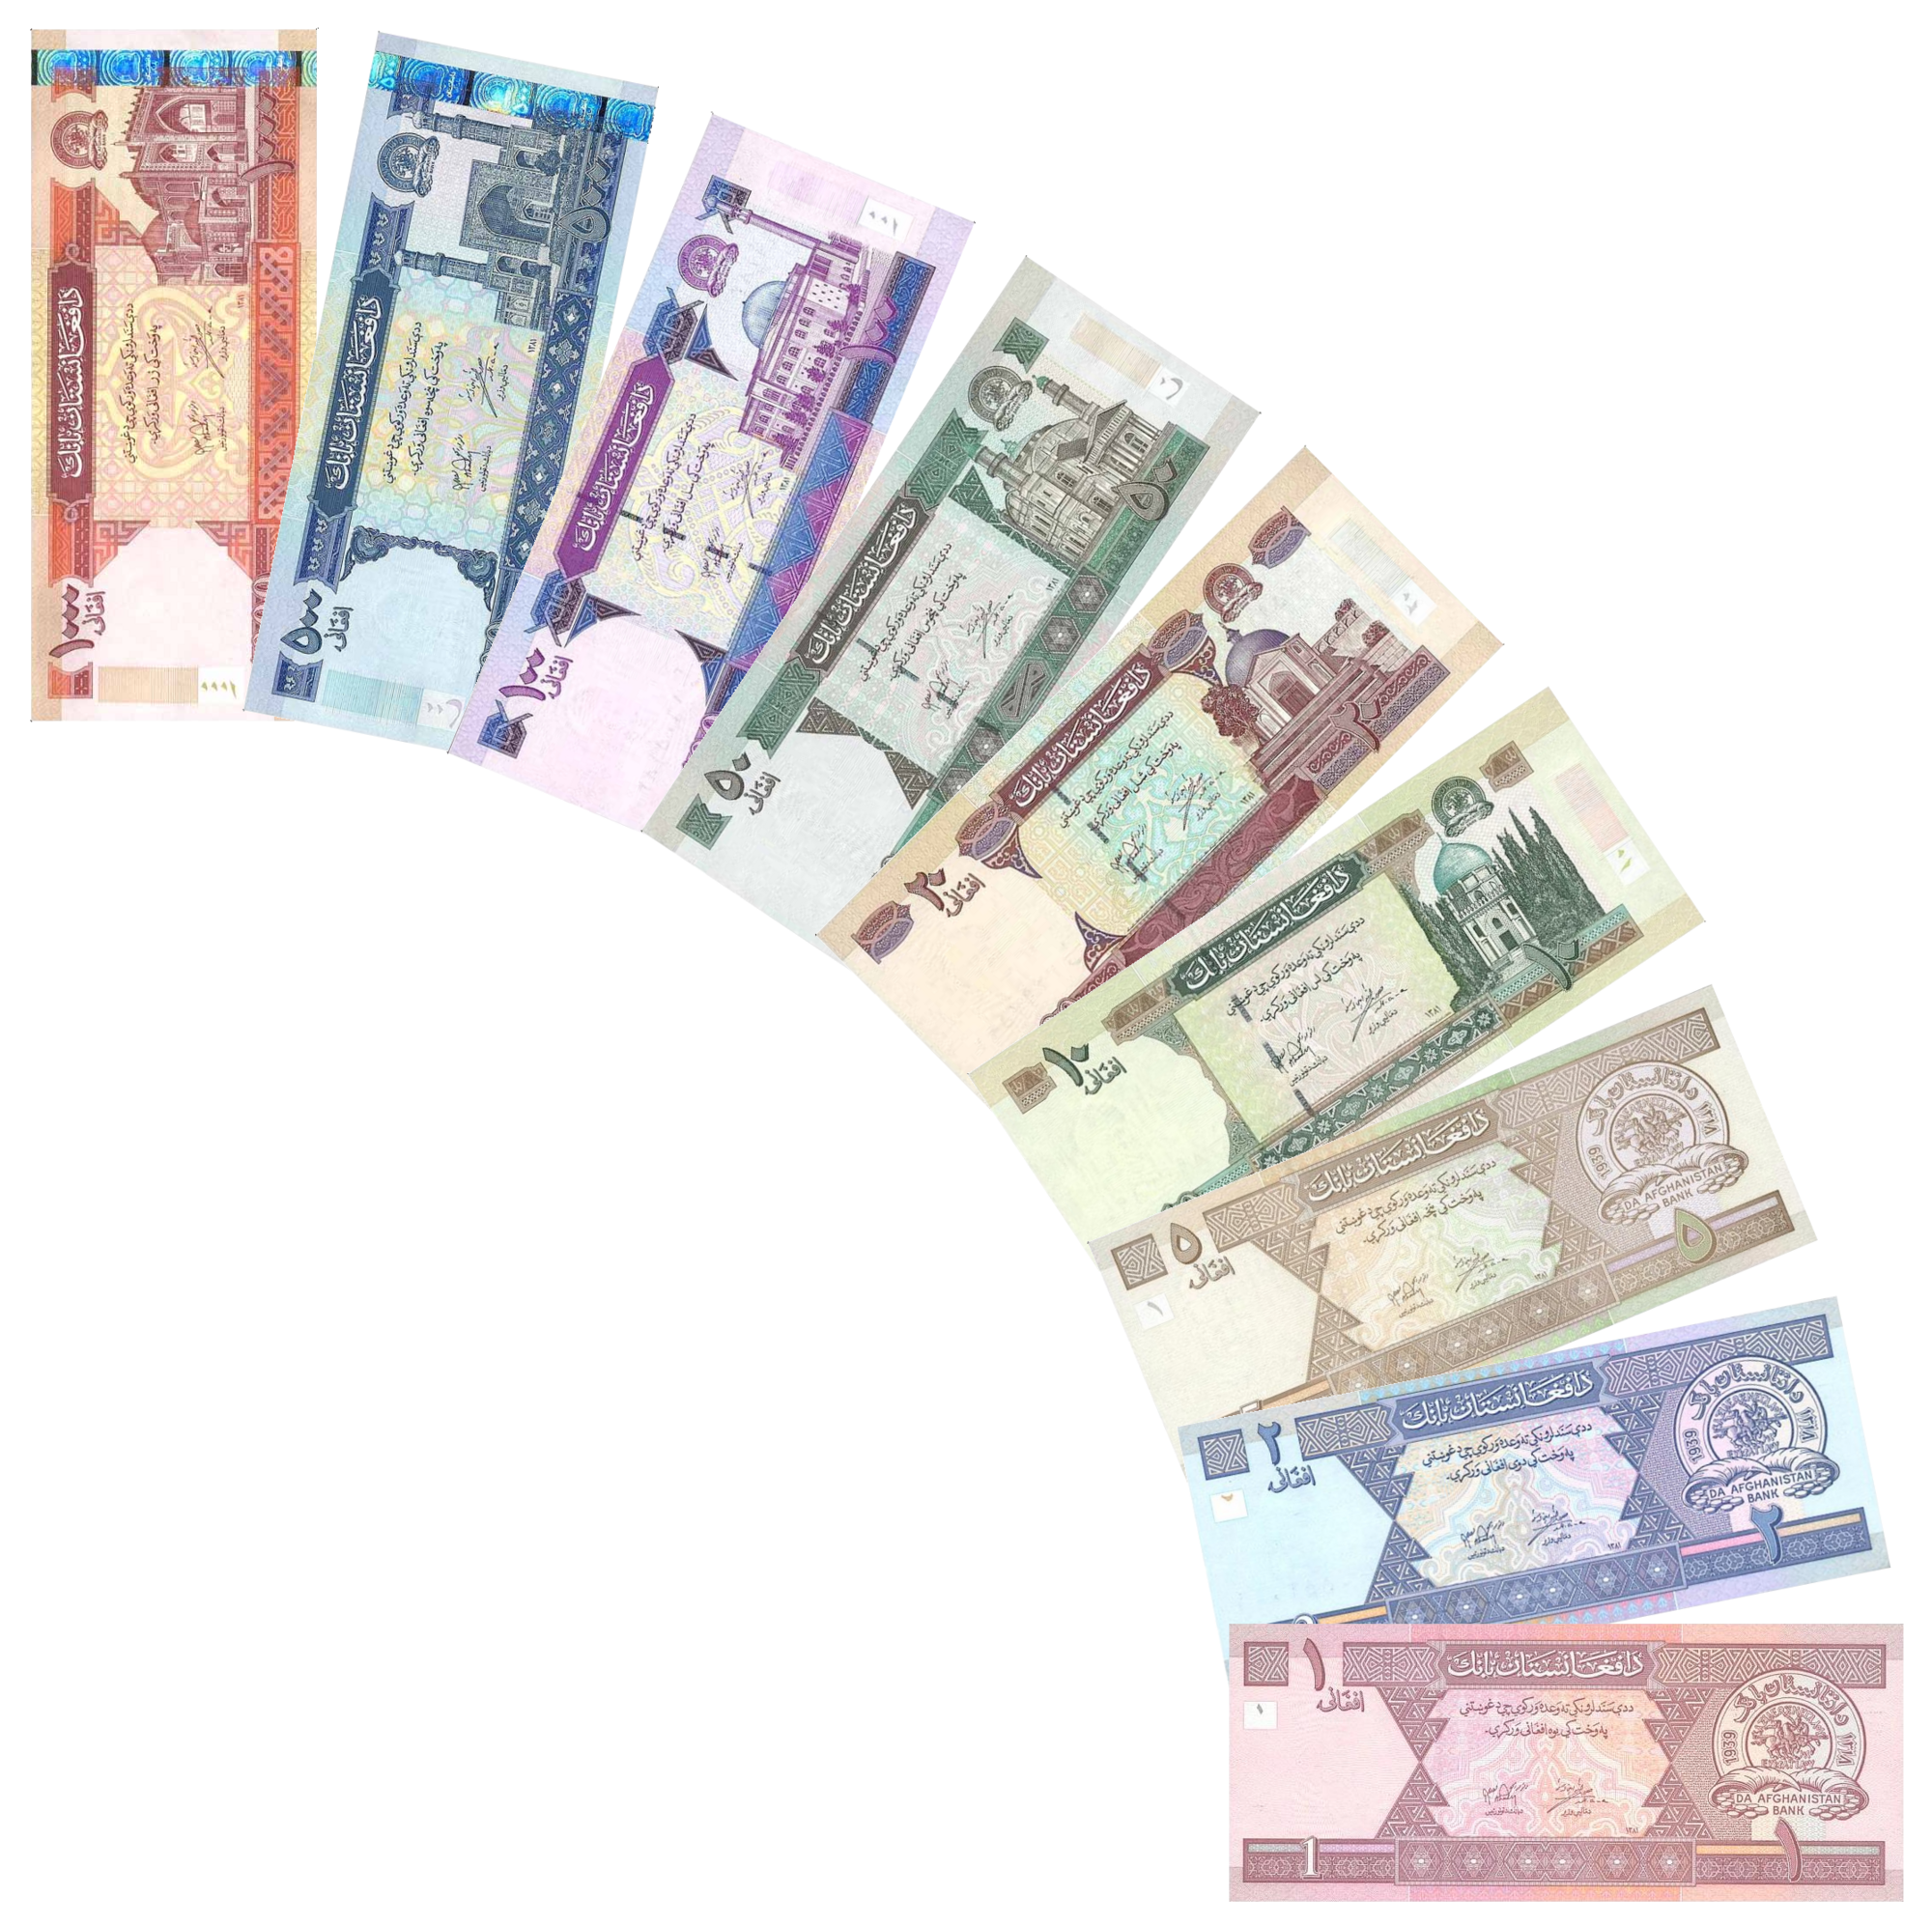 Pound rate in afghanistan dma market exchange rates and currency conversion calculators for all foreign currency nvjuhfo Gallery